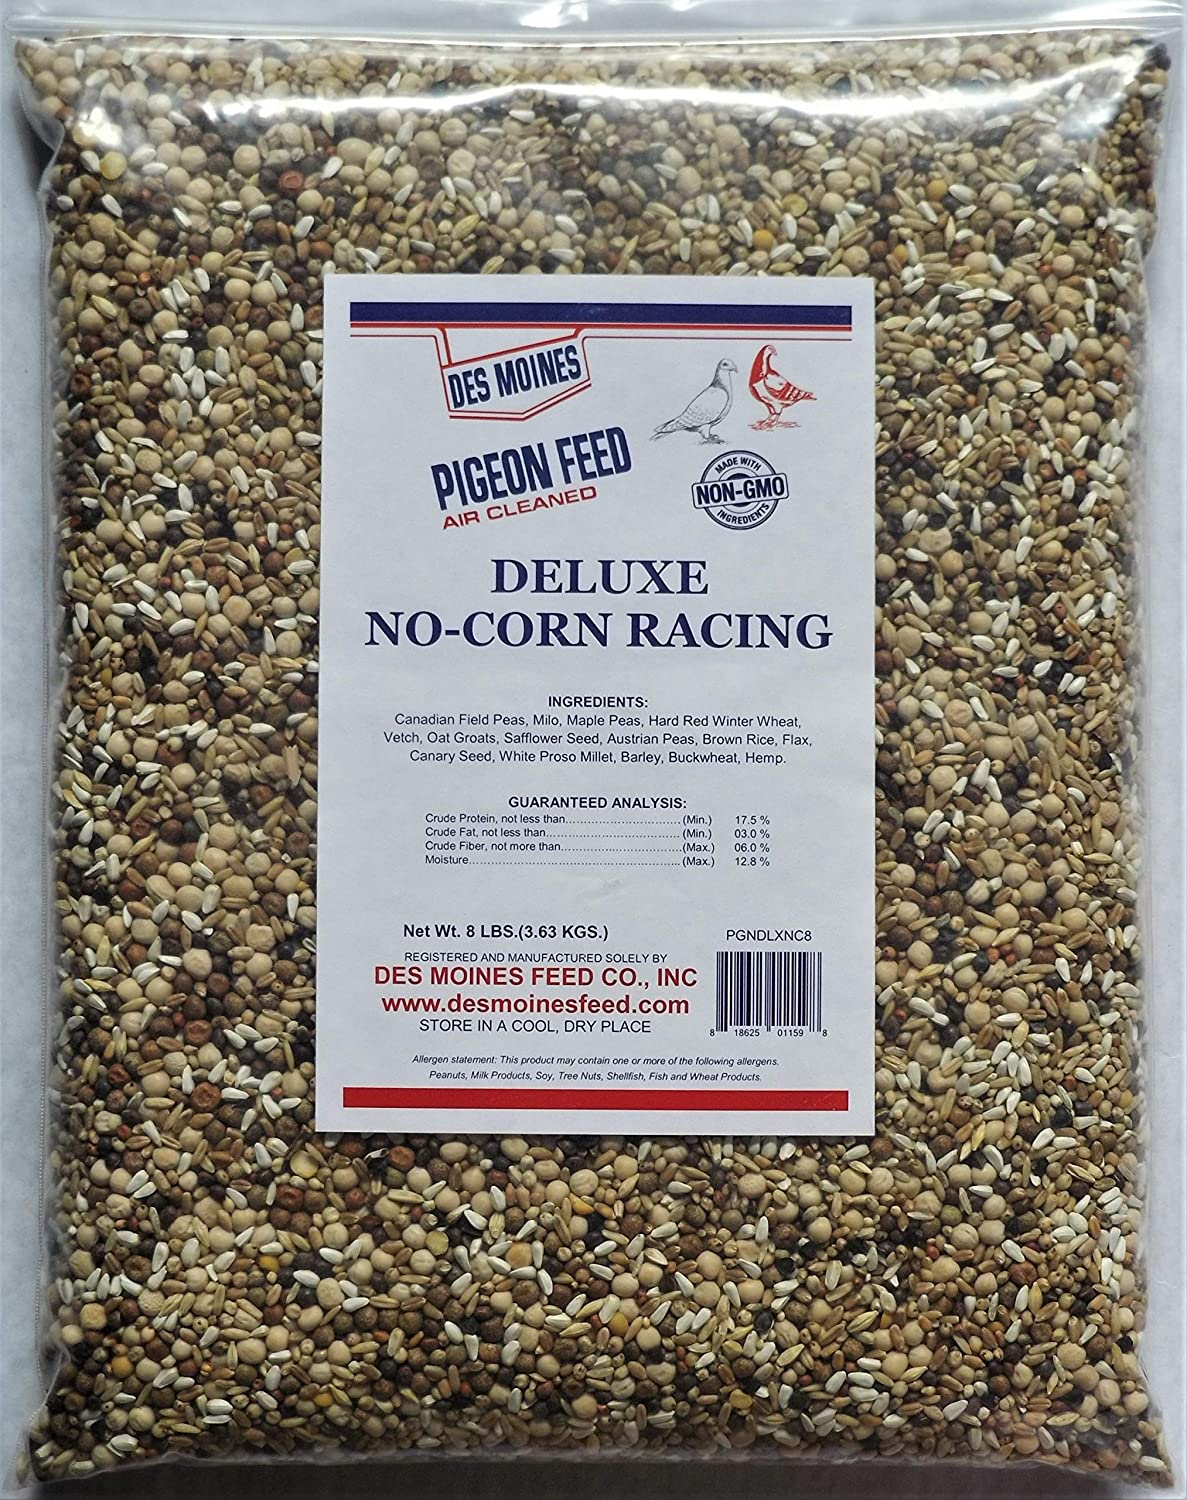 Deluxe No Corn Racer Pigeon Mix (17.5%) 8 lbs